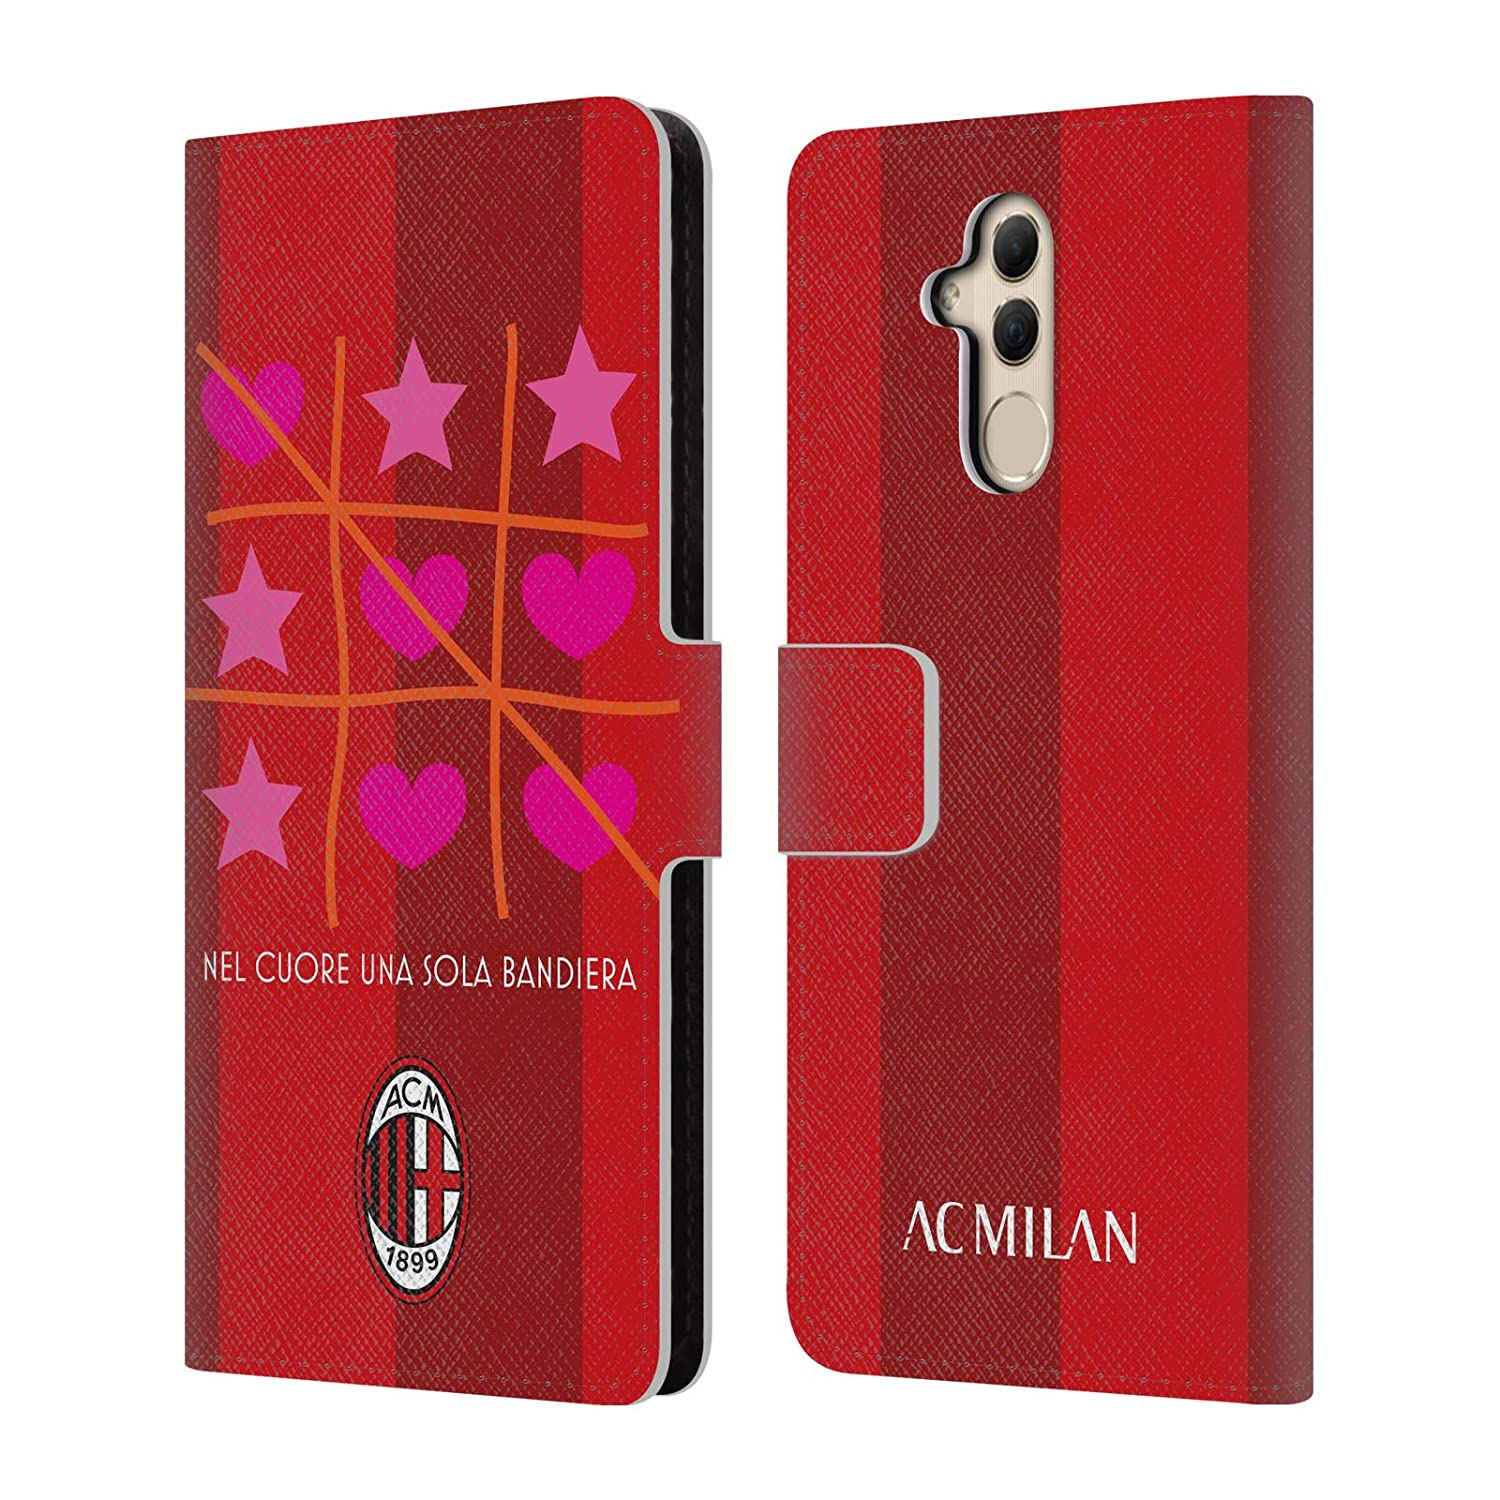 Amazon.com: Official AC Milan Tic Tac Toe 2018/19 Children ...